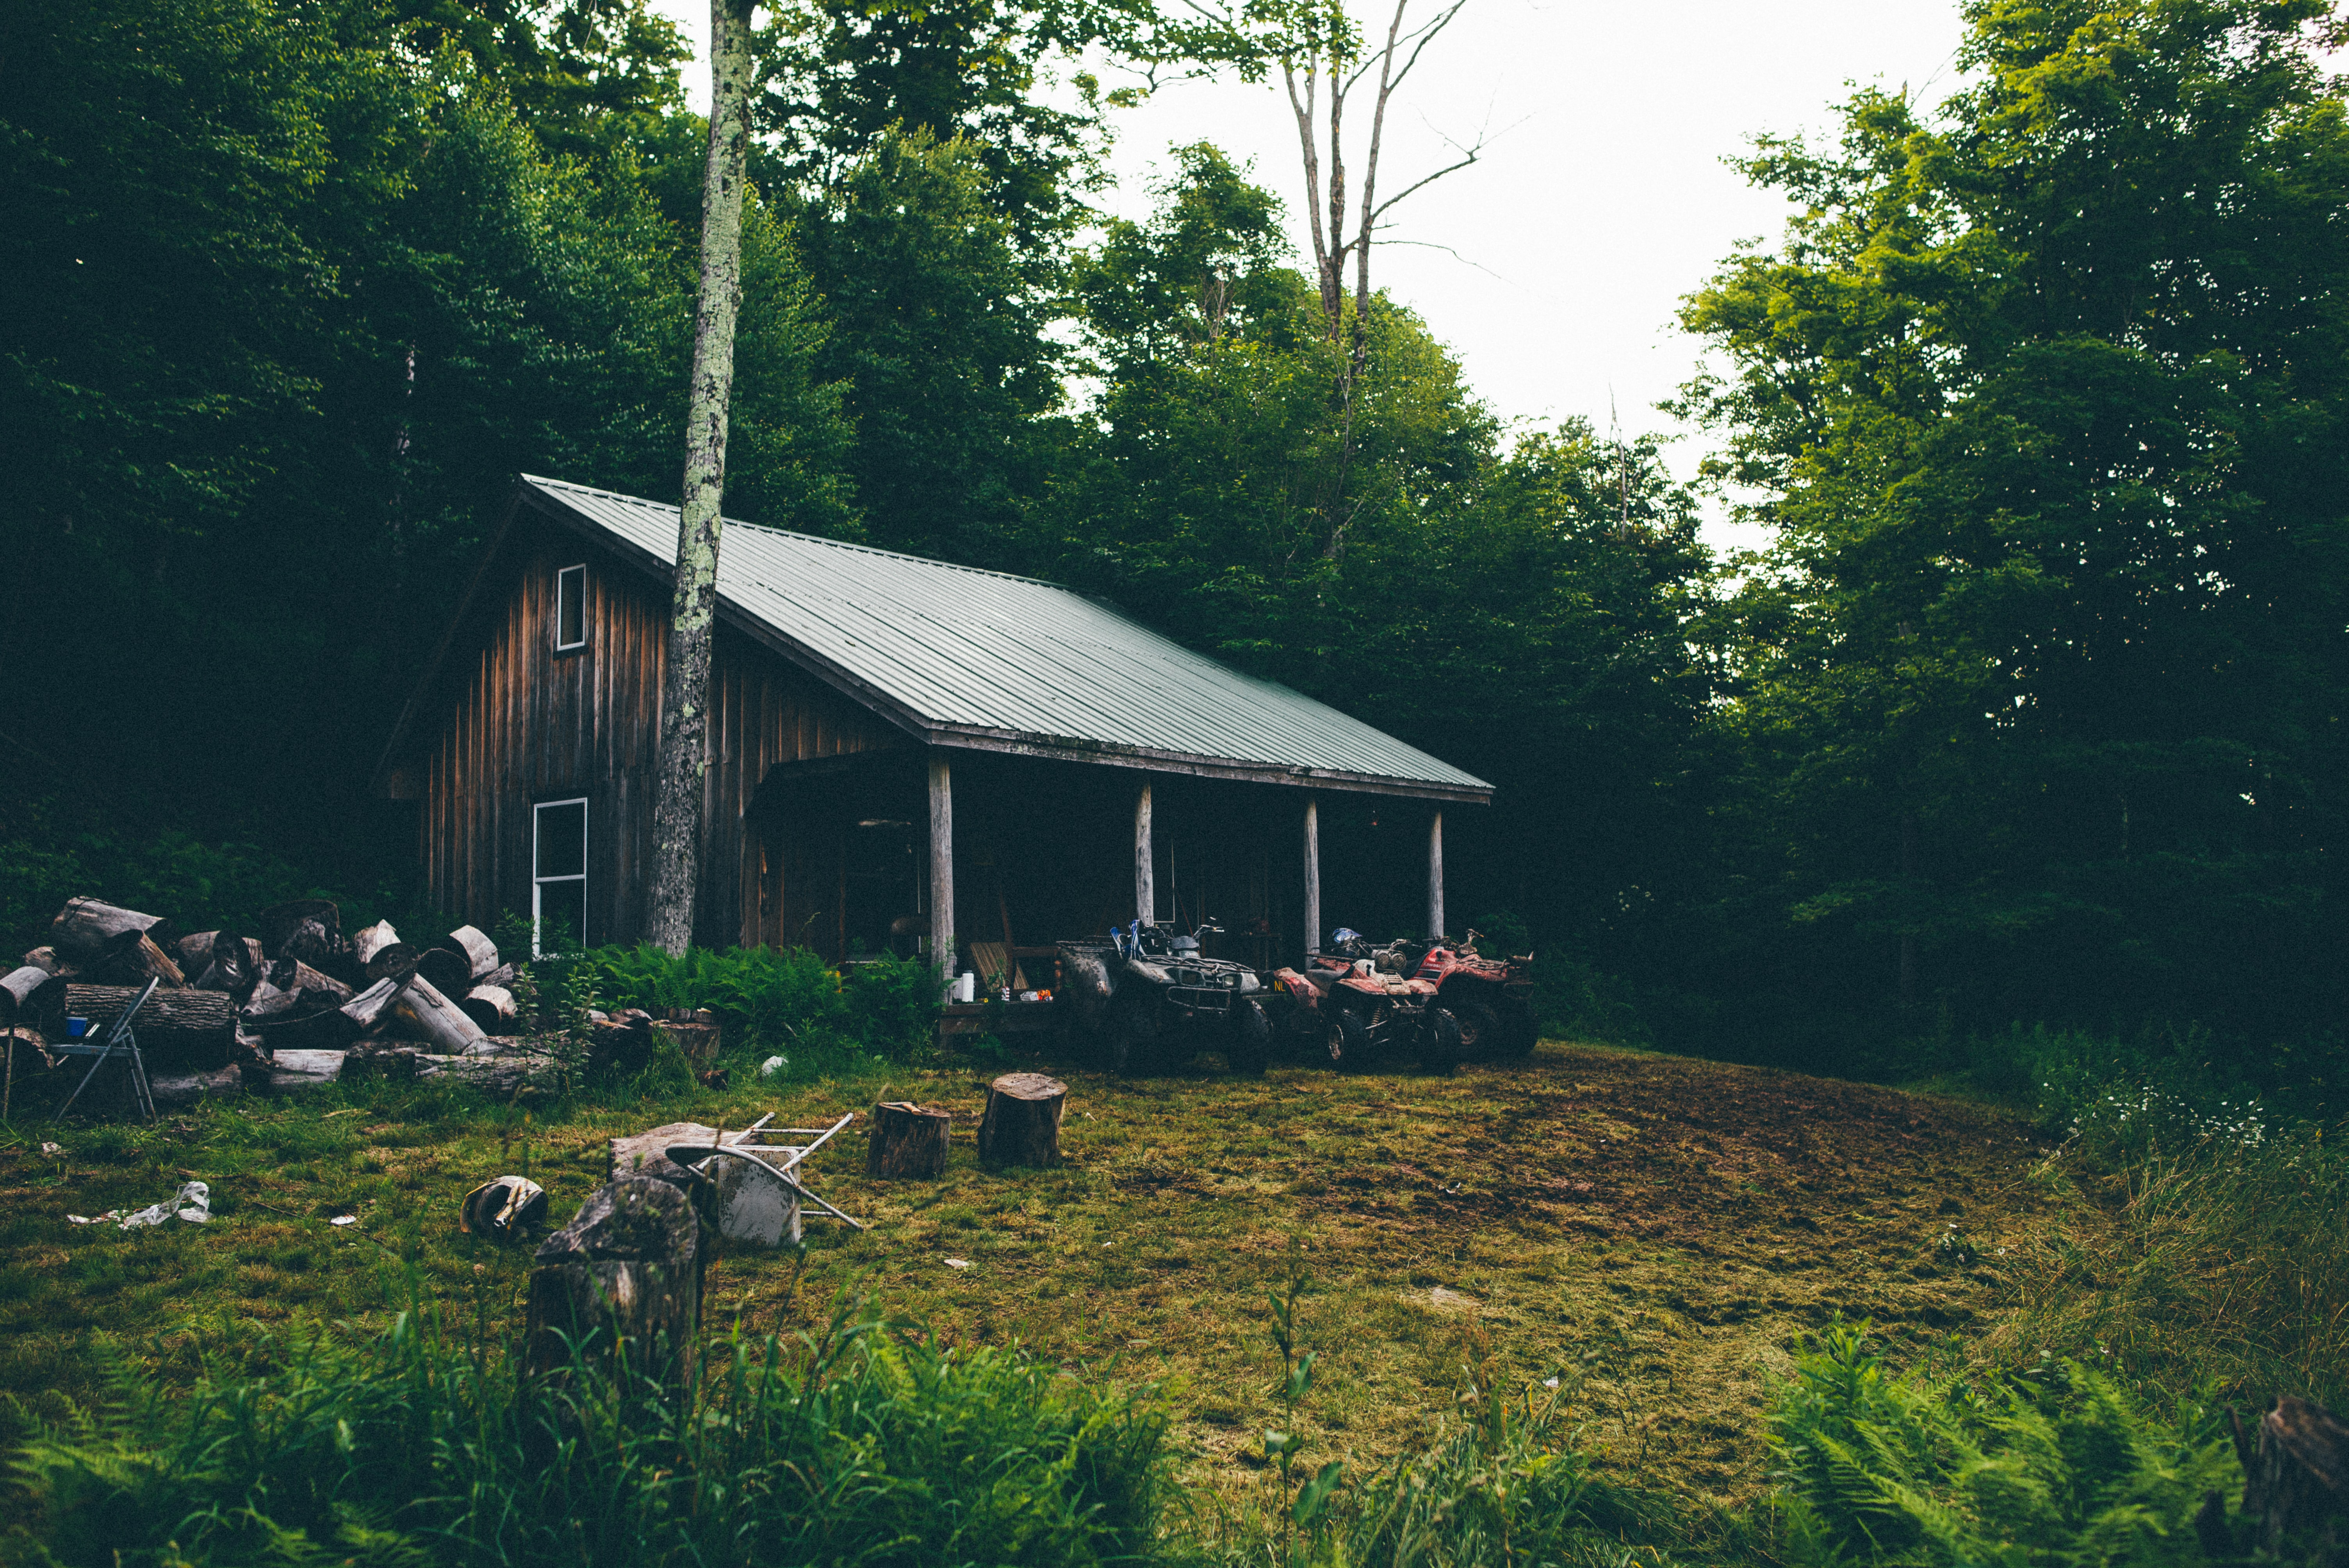 Old cabin in the woods with a tin roof and three four wheelers, lawn chairs, and chopped wood in the yard